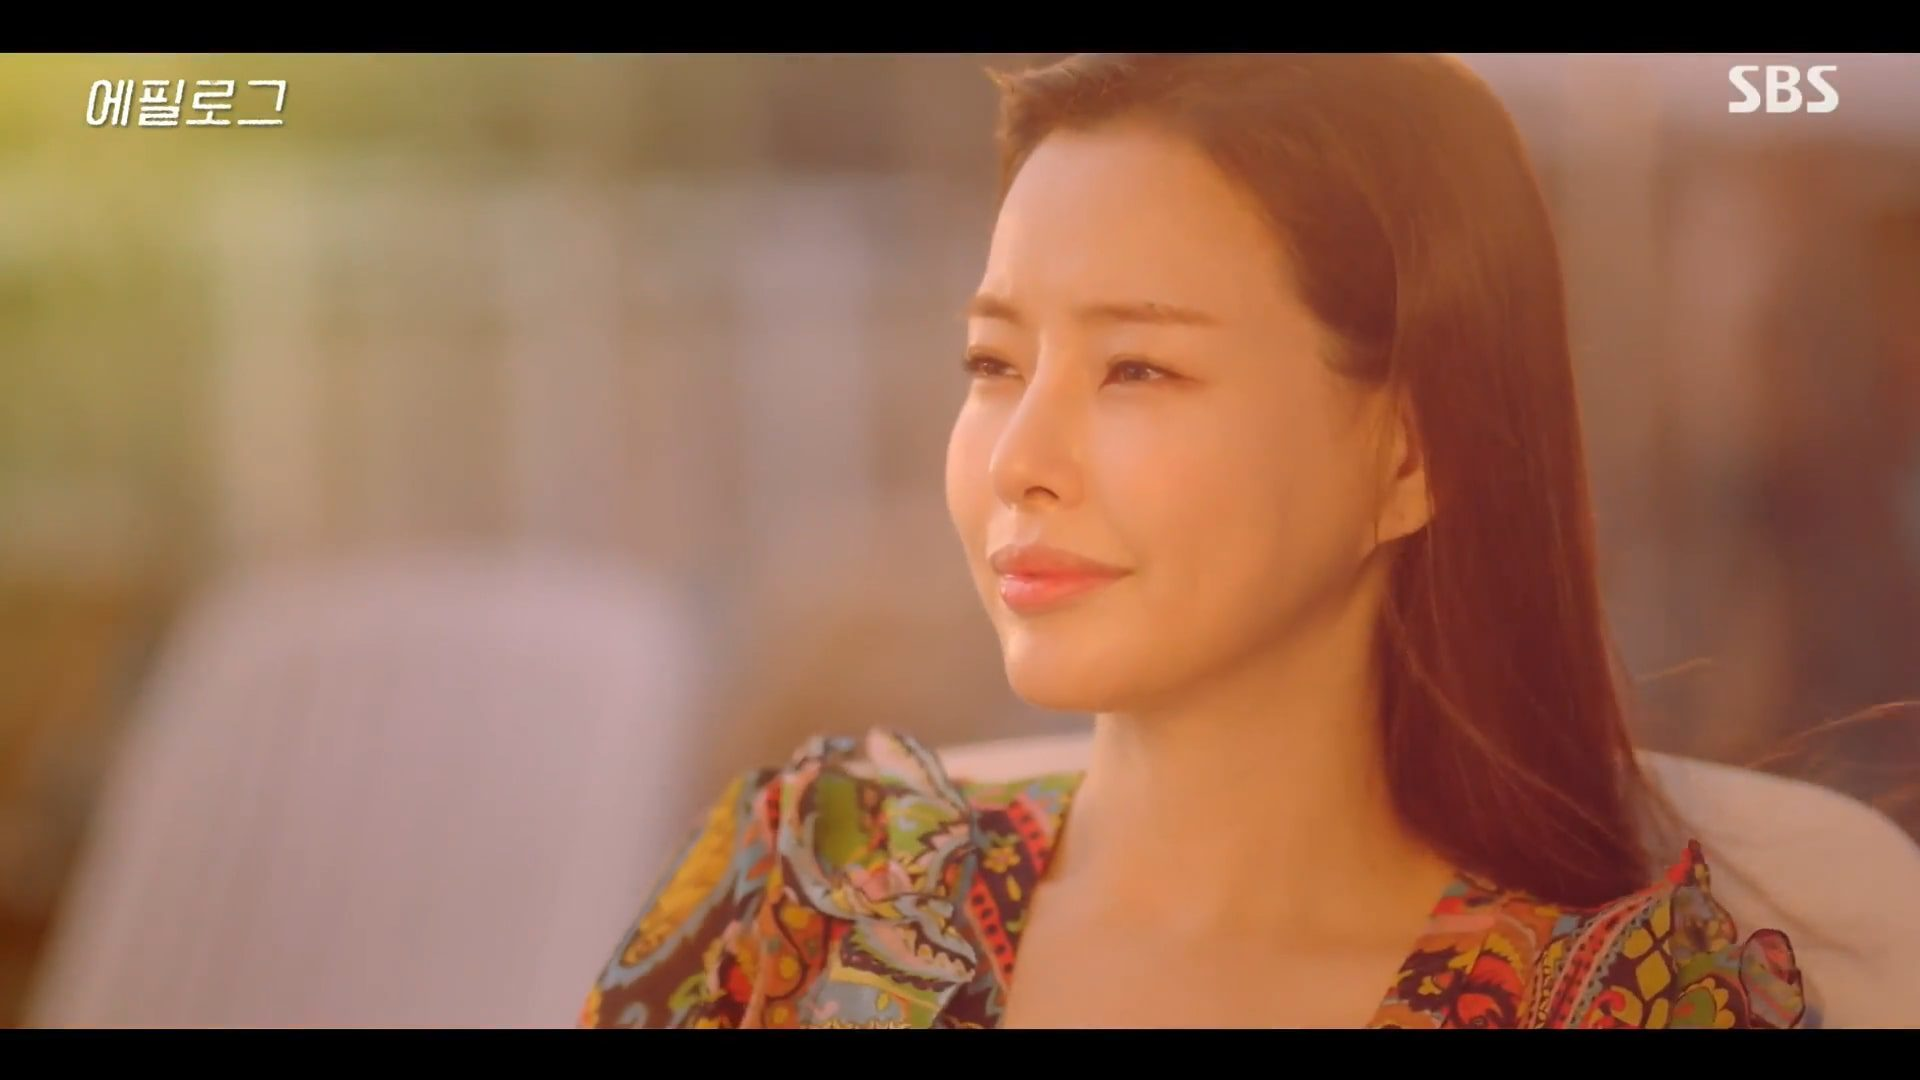 One The Woman Episode 5